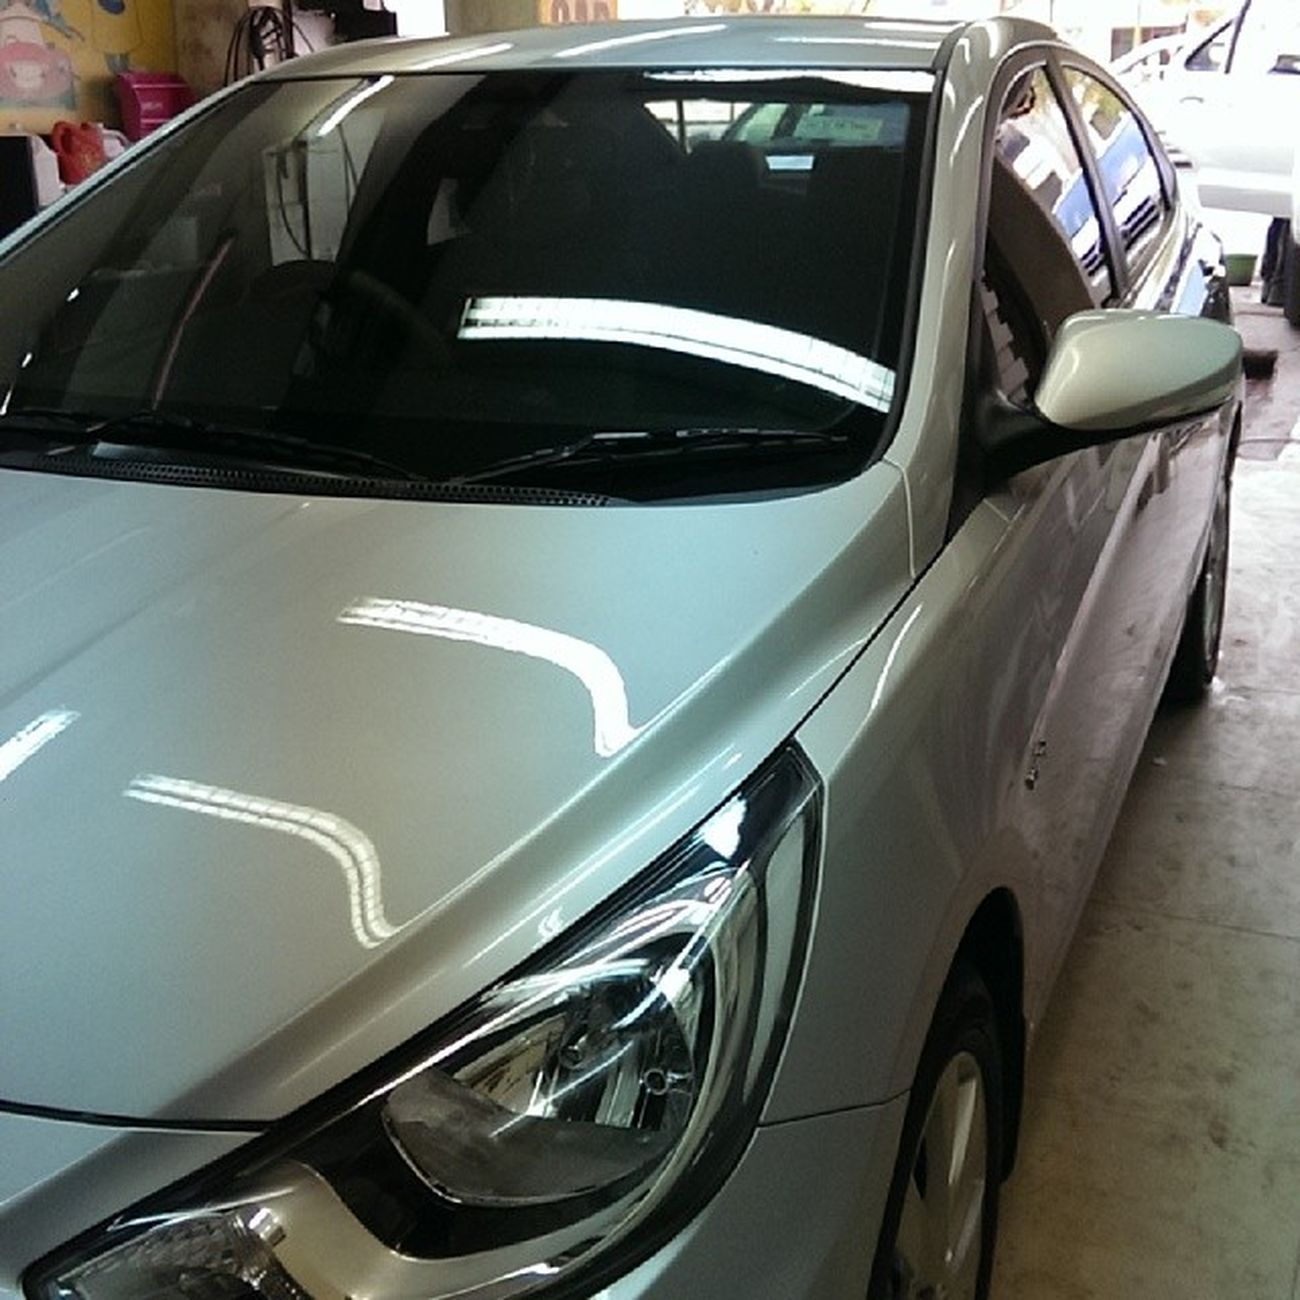 Dads Ride Car Instacar Hyundai Verna Fluidic HyundaiVerna Hyundaiaccent Hyundailove At Carzspa 6 Step Acylic Coating Shine High Gloss Instalike Follow Instagood